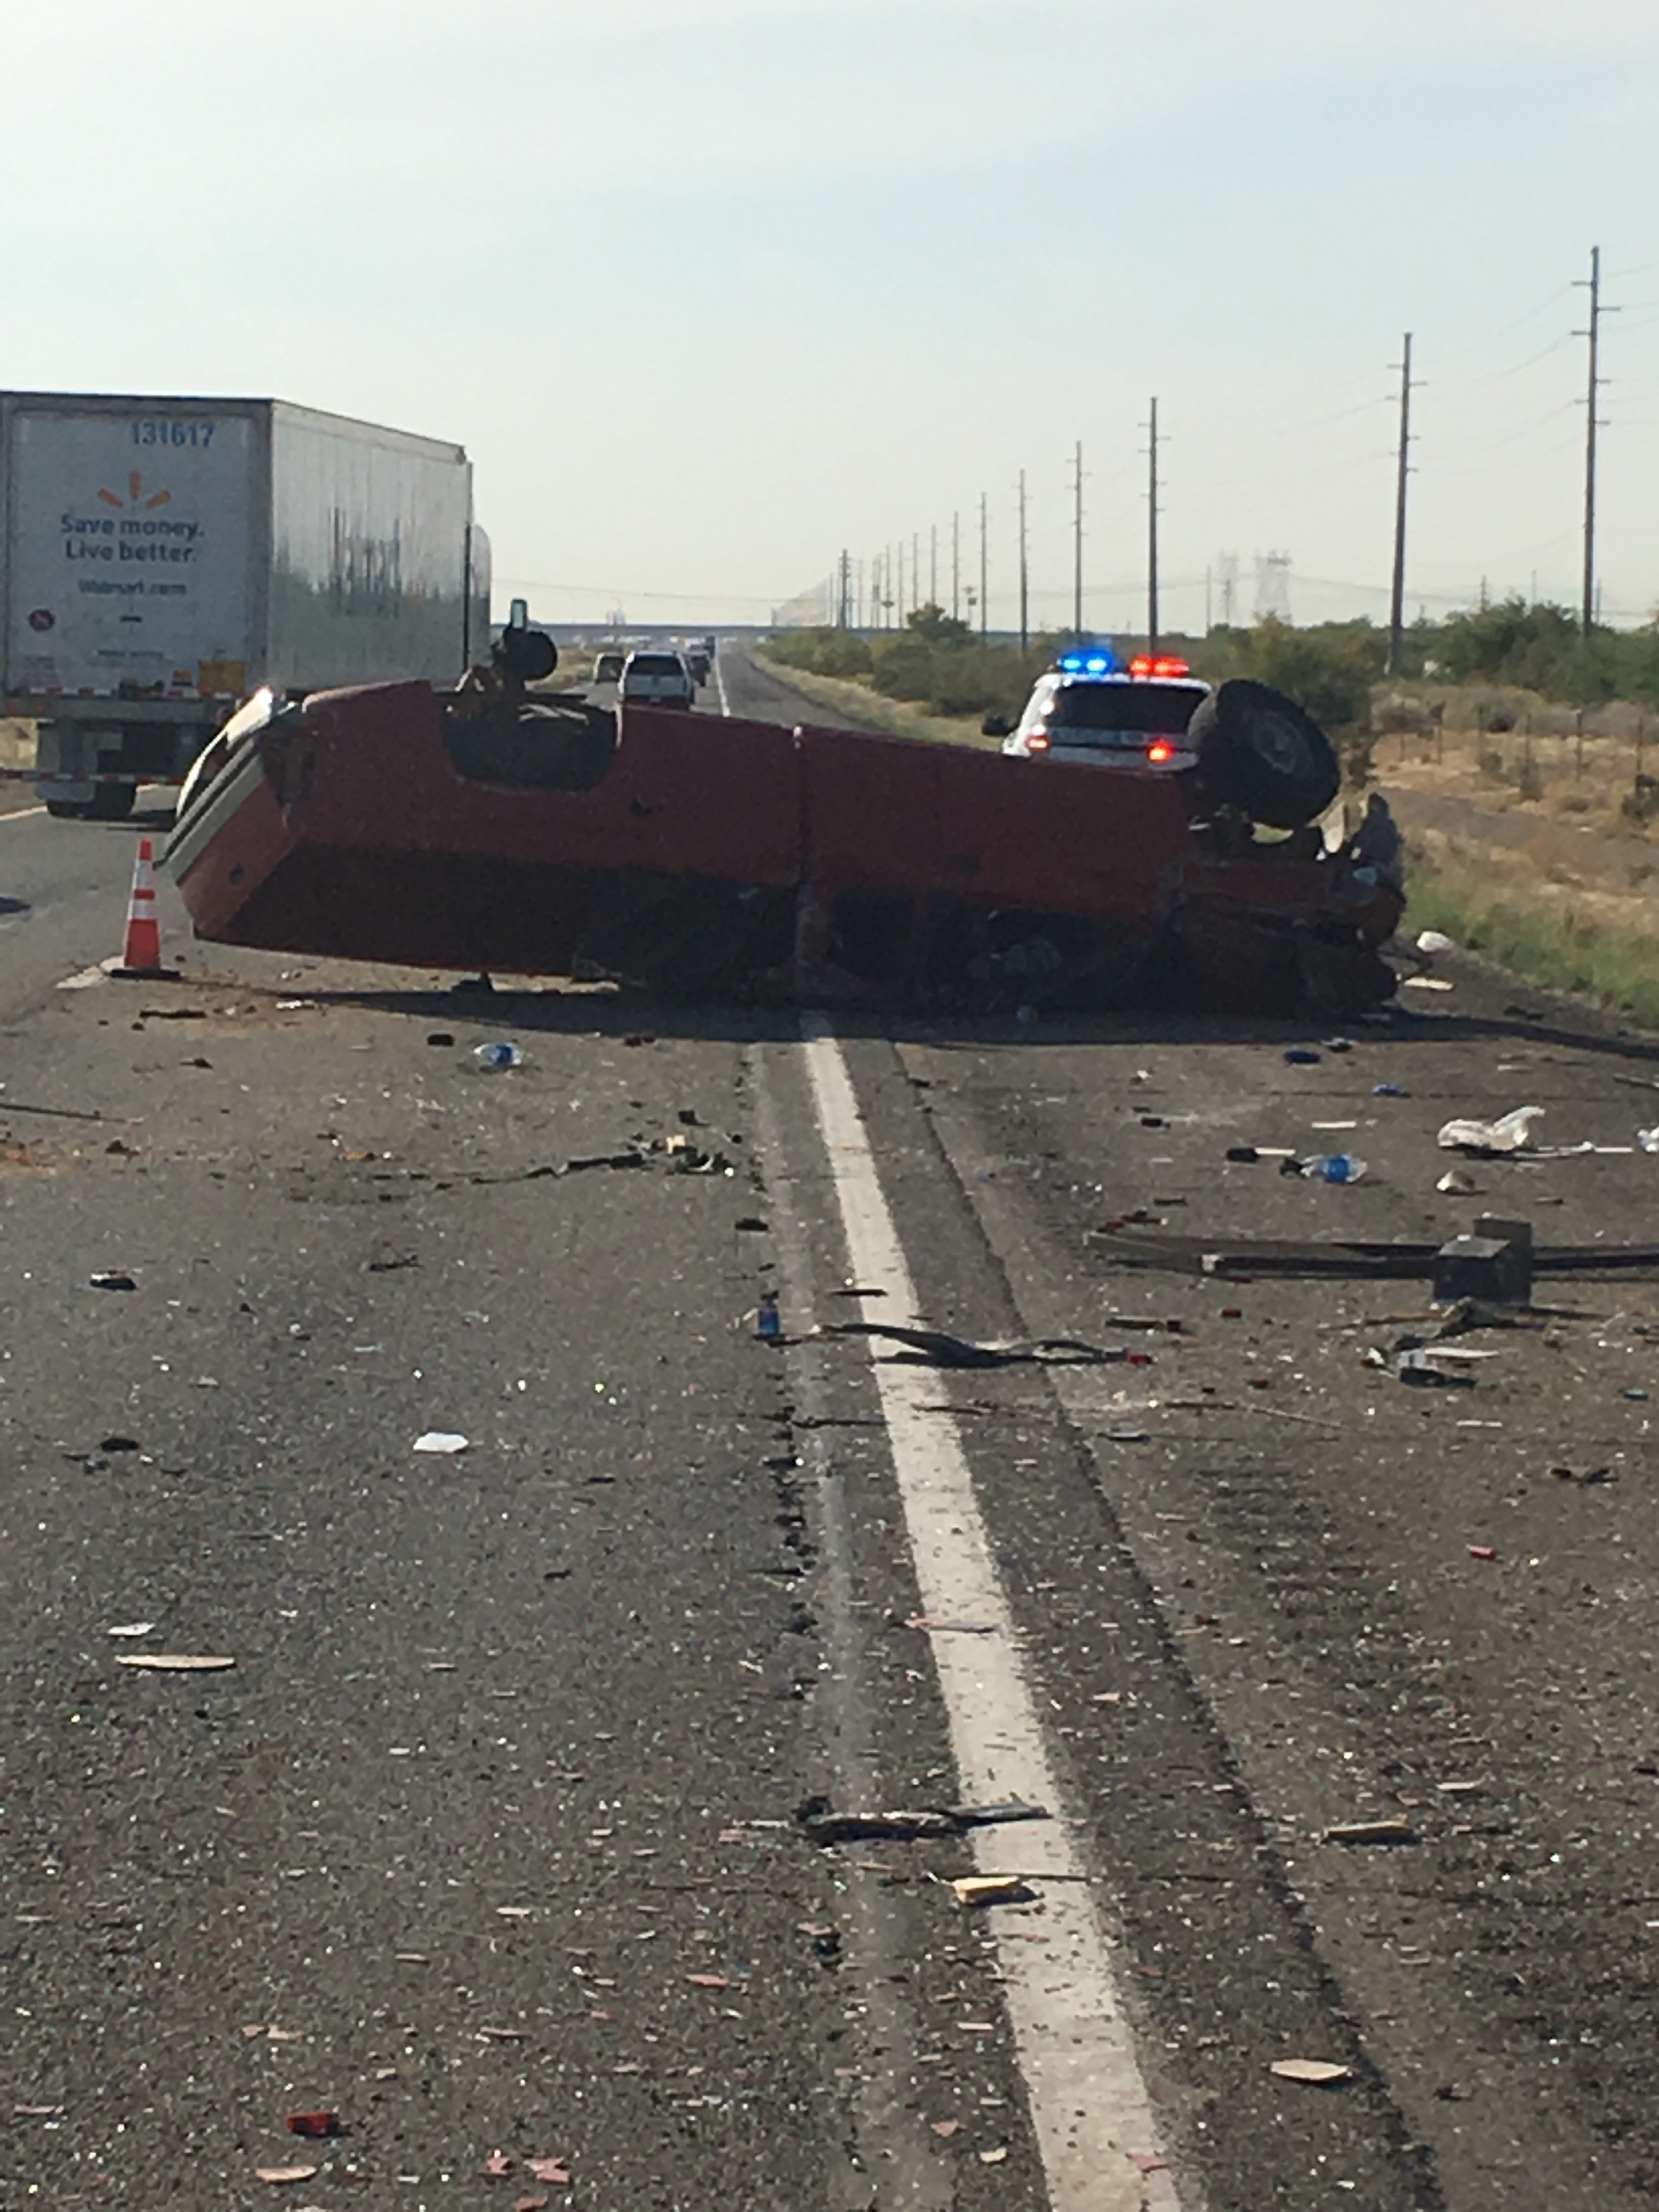 Distracted Driving Related Crash 4